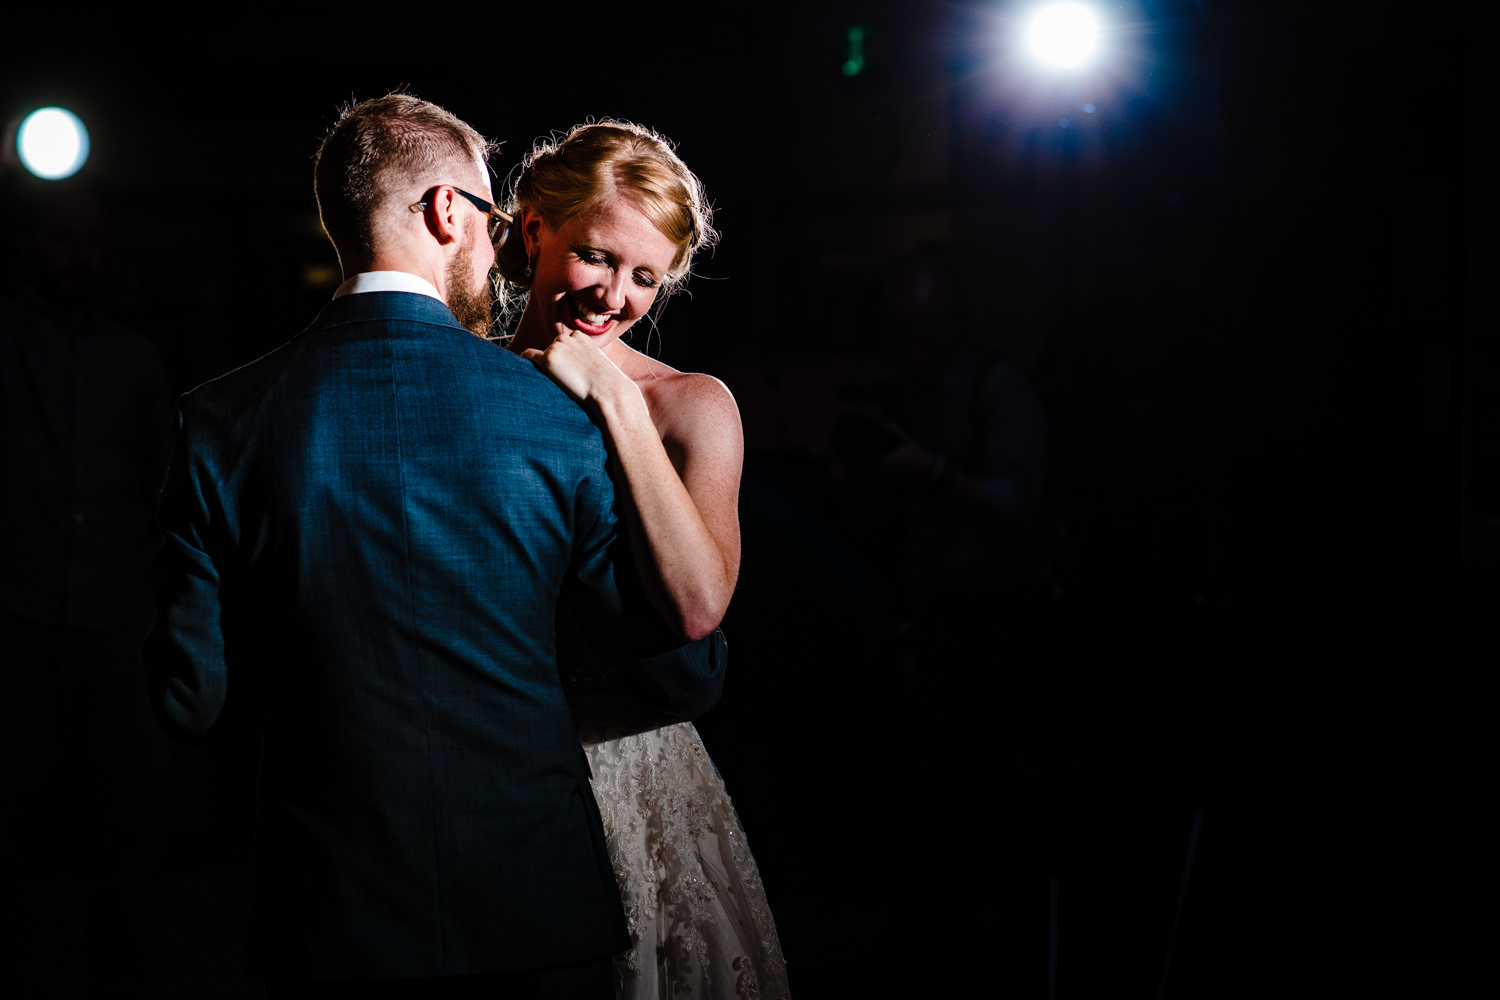 Boulder Colorado wedding at Under the Sun Eatery and Pizzeria by wedding photographer, JMGant Photography